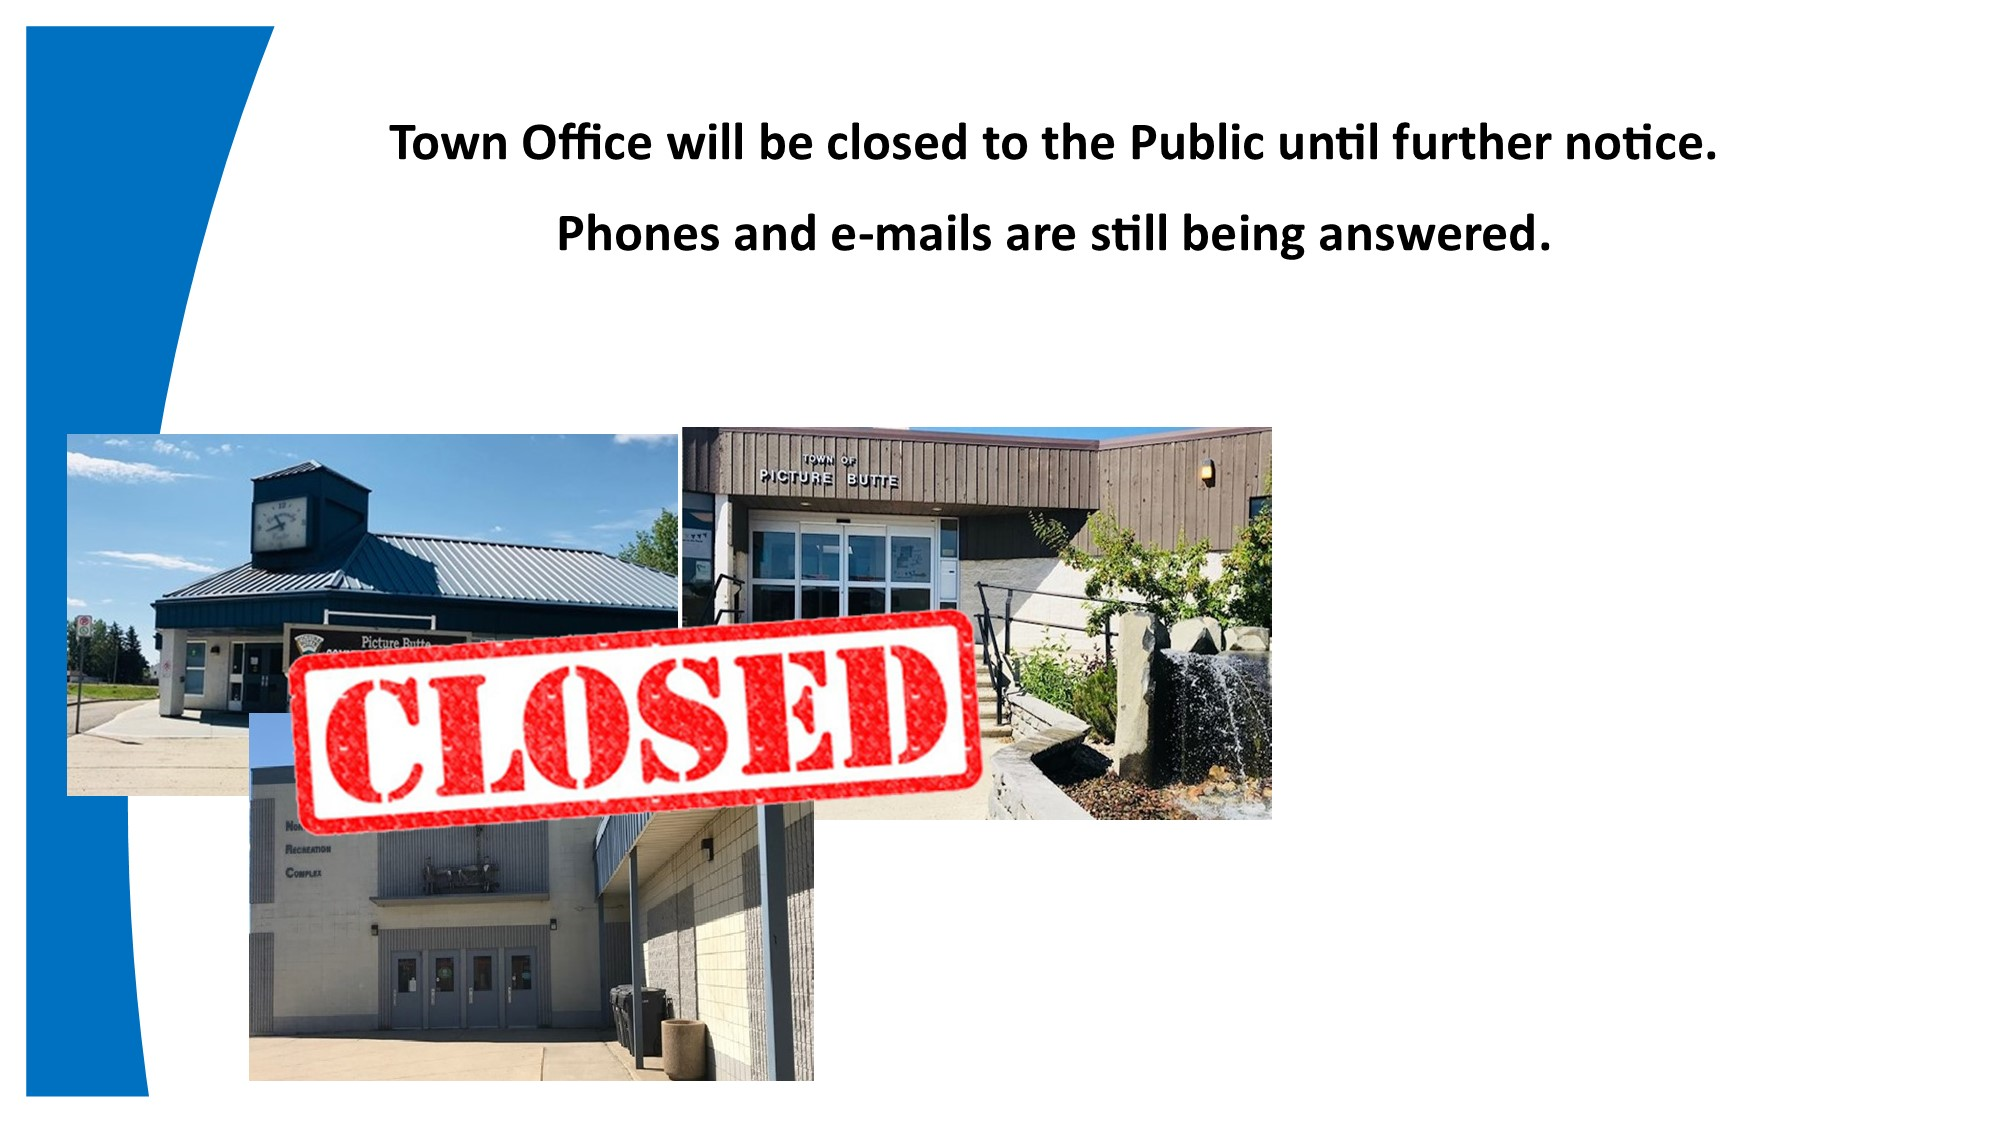 <div id=slideshow_title>Town Office Closed until further notice</div> <br>As per Provincial restrictions, Town Office will be closed to the public from Dec. 14. Calls and emails will still be responded to.